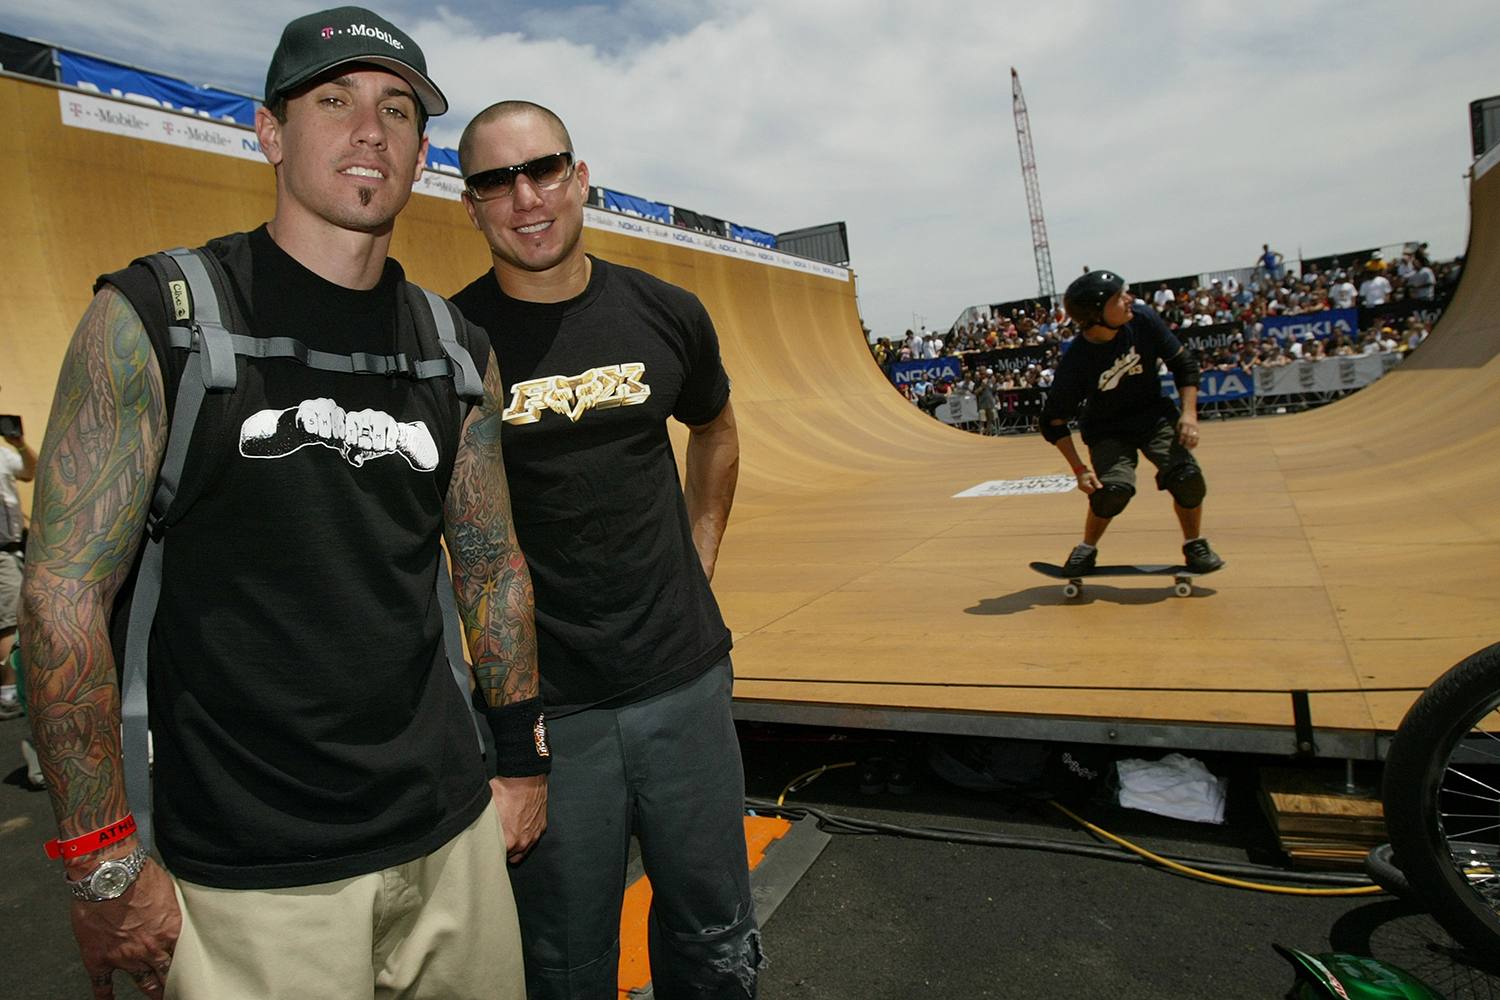 Carey Hart (L) and Dave Mirra (R) attend the Ramps and Amps Invitational on July 19, 2003.